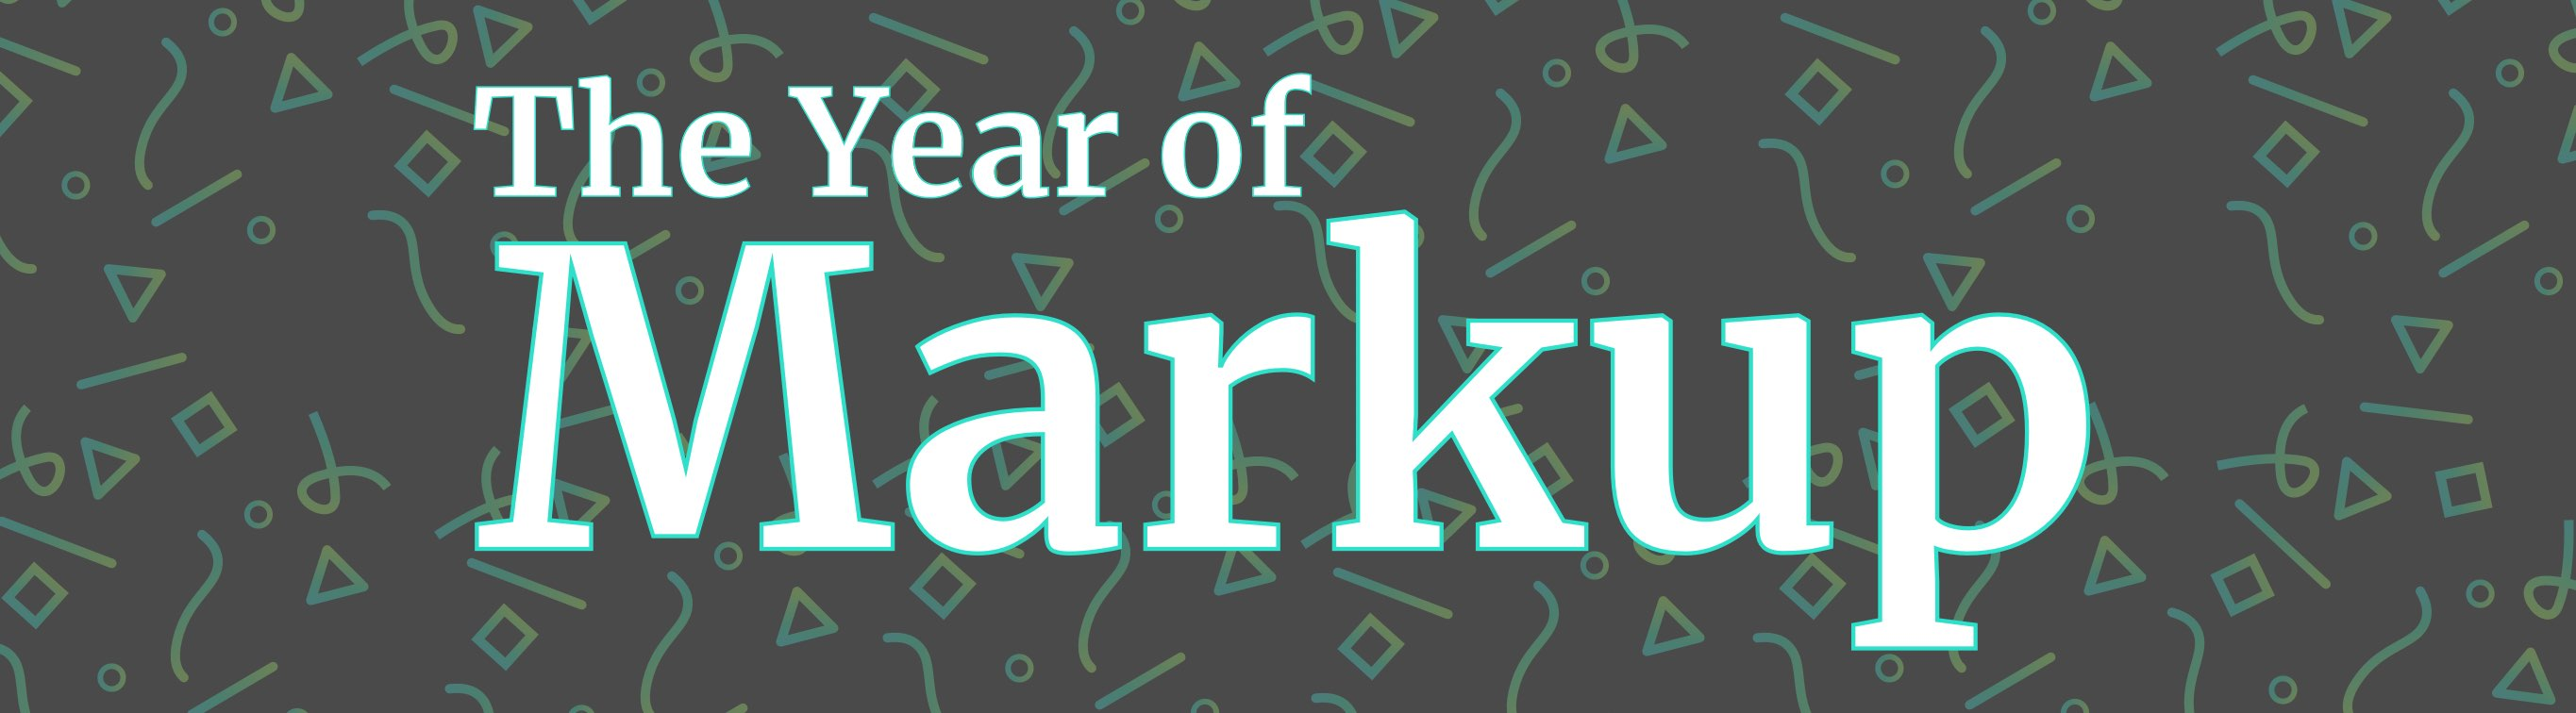 Year of Markup Graphic